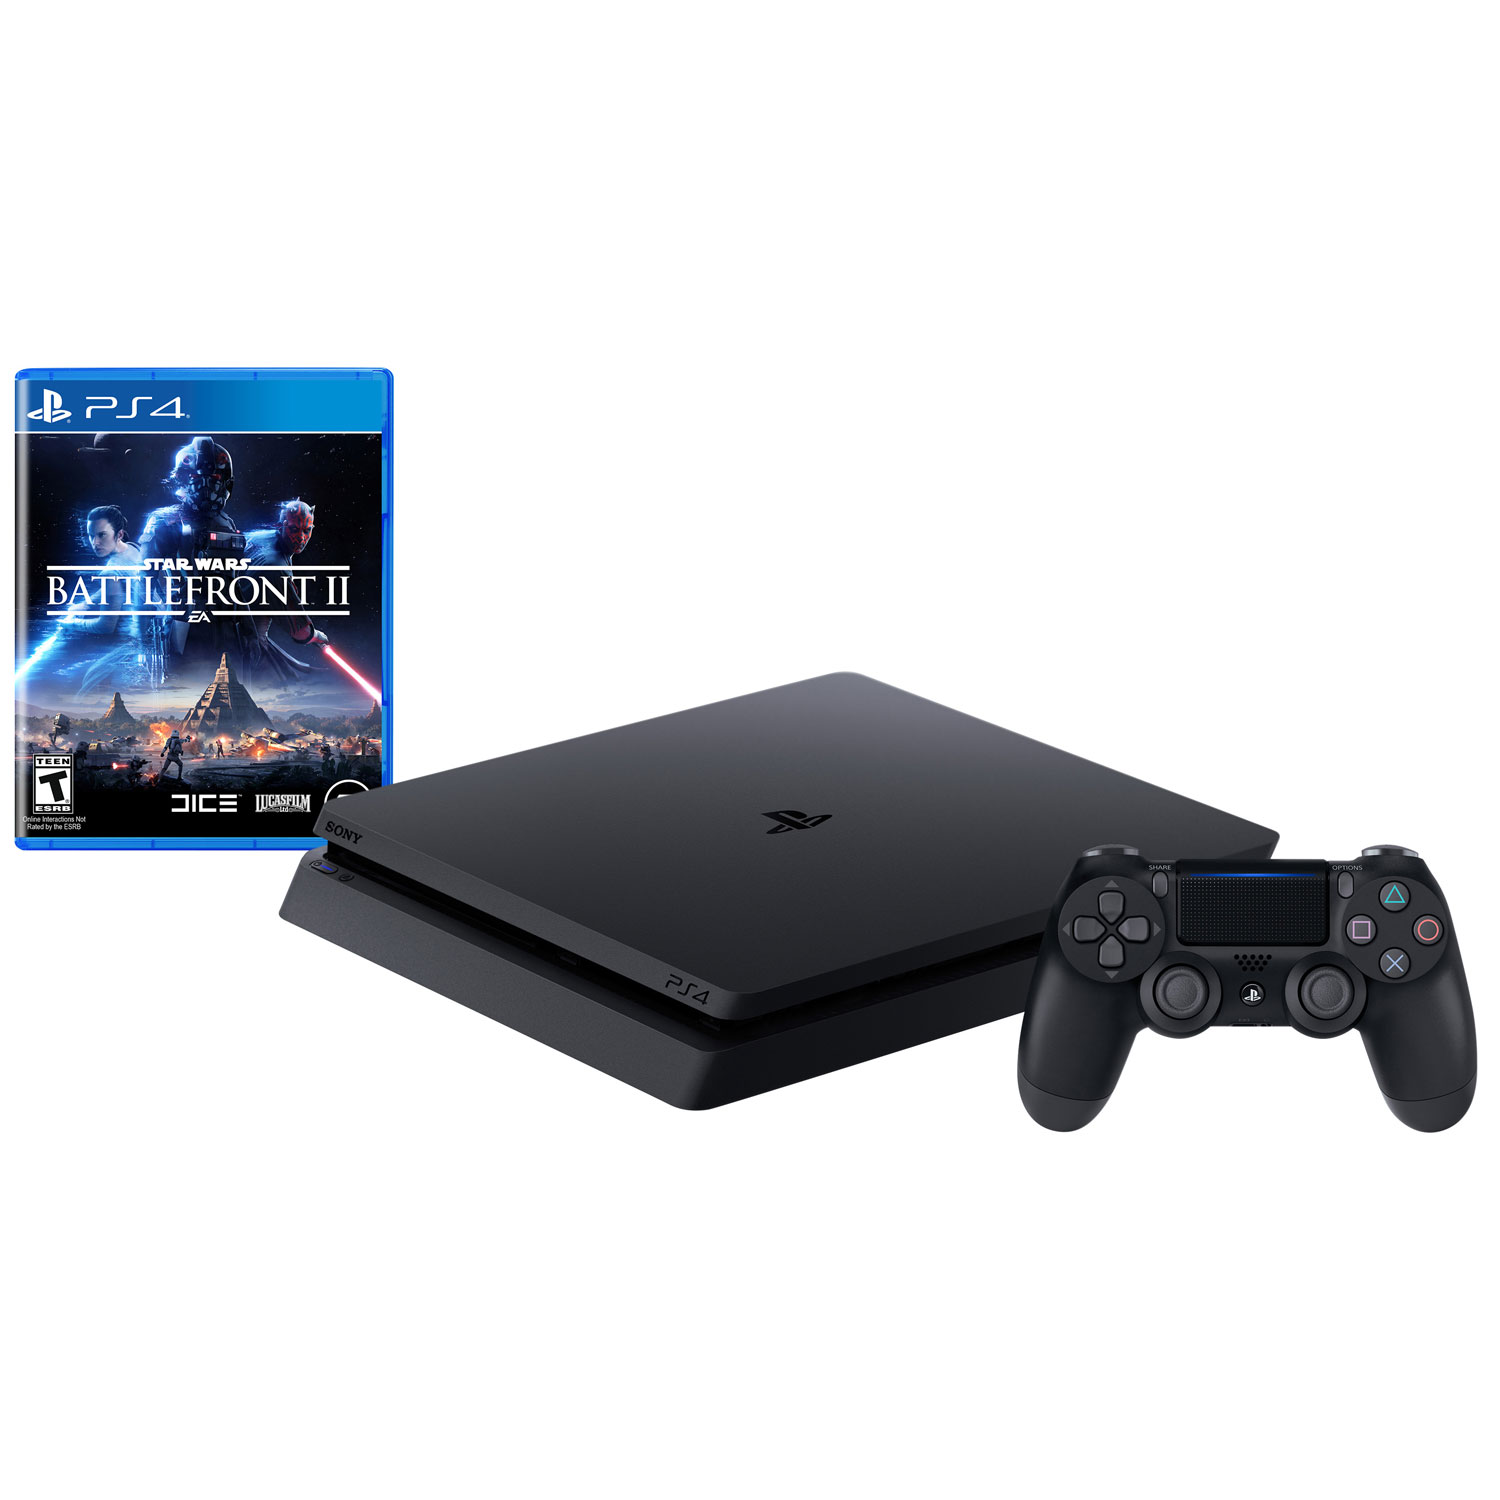 sony ps4 console. playstation 4 slim 1tb star wars battlefront ii bundle - jet black sony ps4 console s